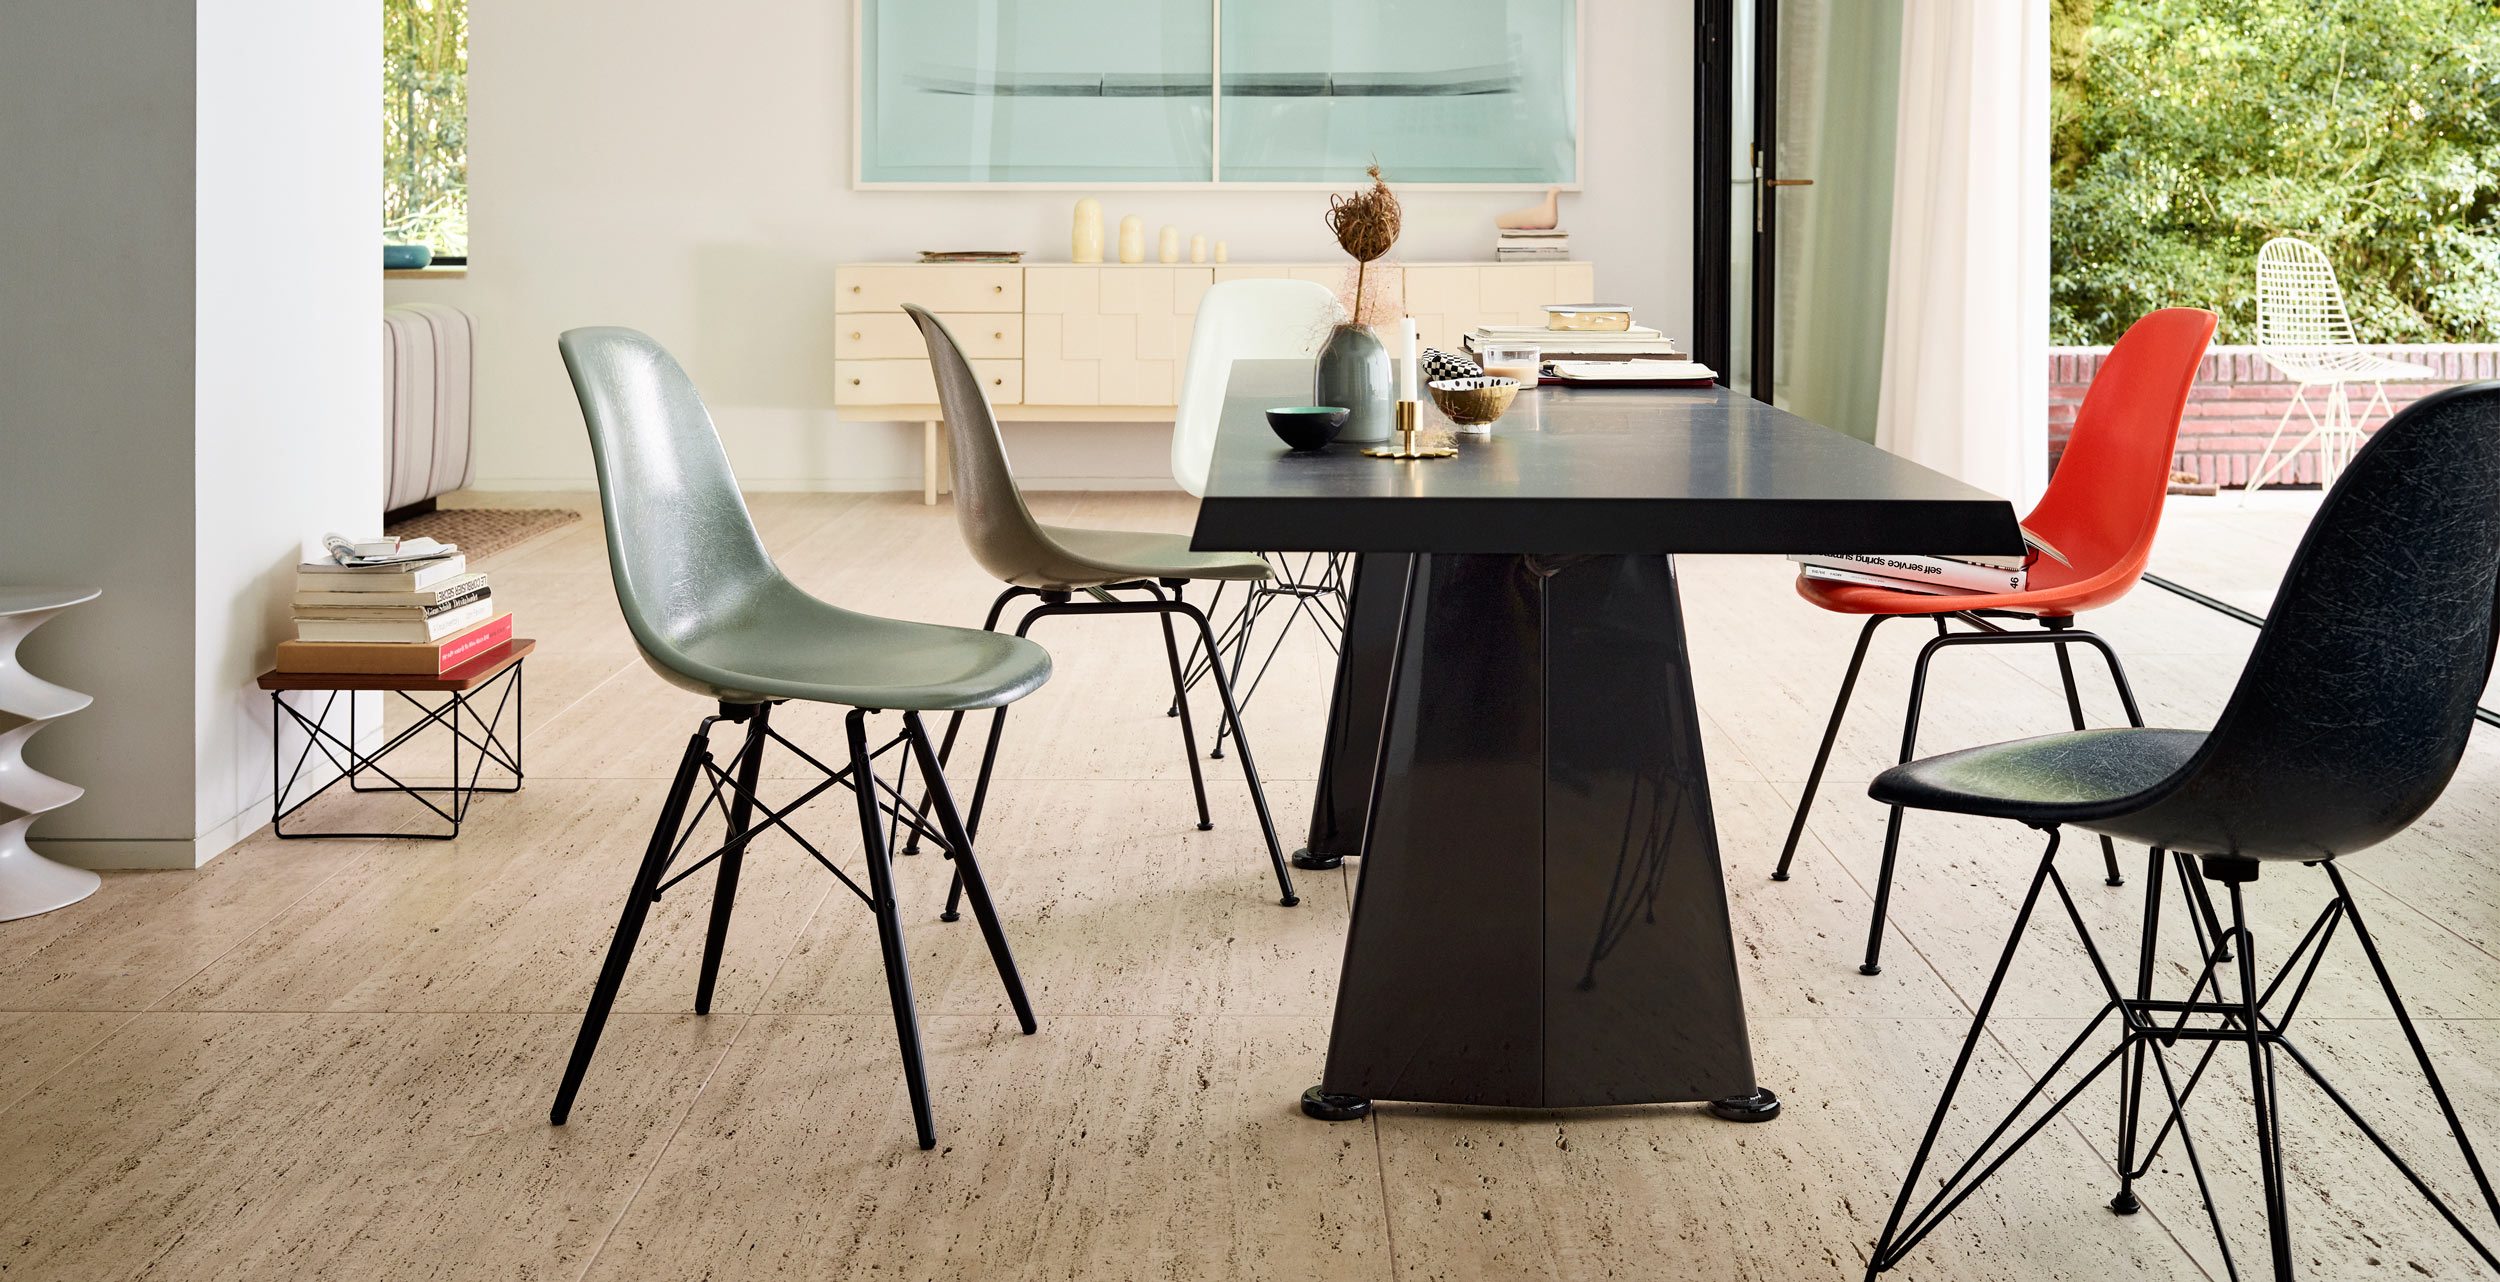 Vitra Eames Fiberglass Chairs with Trapeze Table